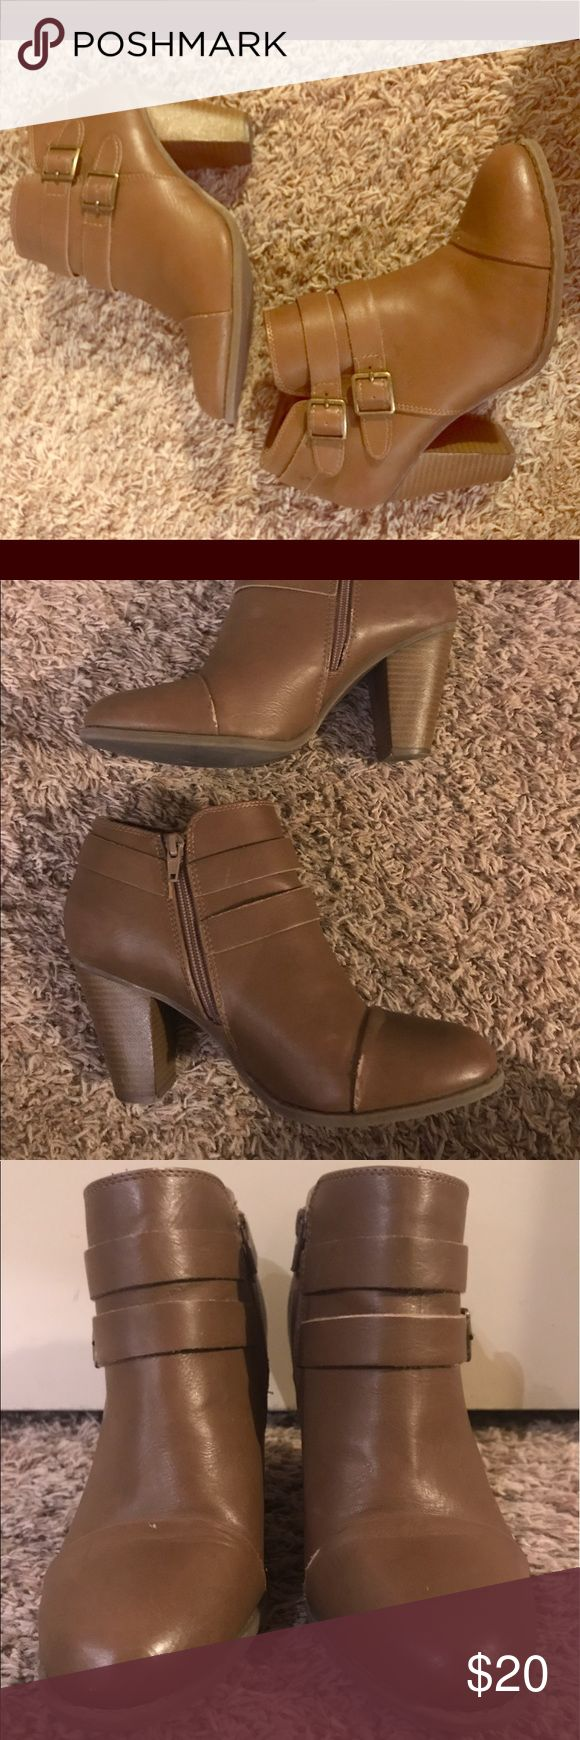 Camel colored ankle boots Cute ankle boots with buckle embellishments. Visible signs of wear, but they still have lots of life! LC Lauren Conrad Shoes Ankle Boots & Booties